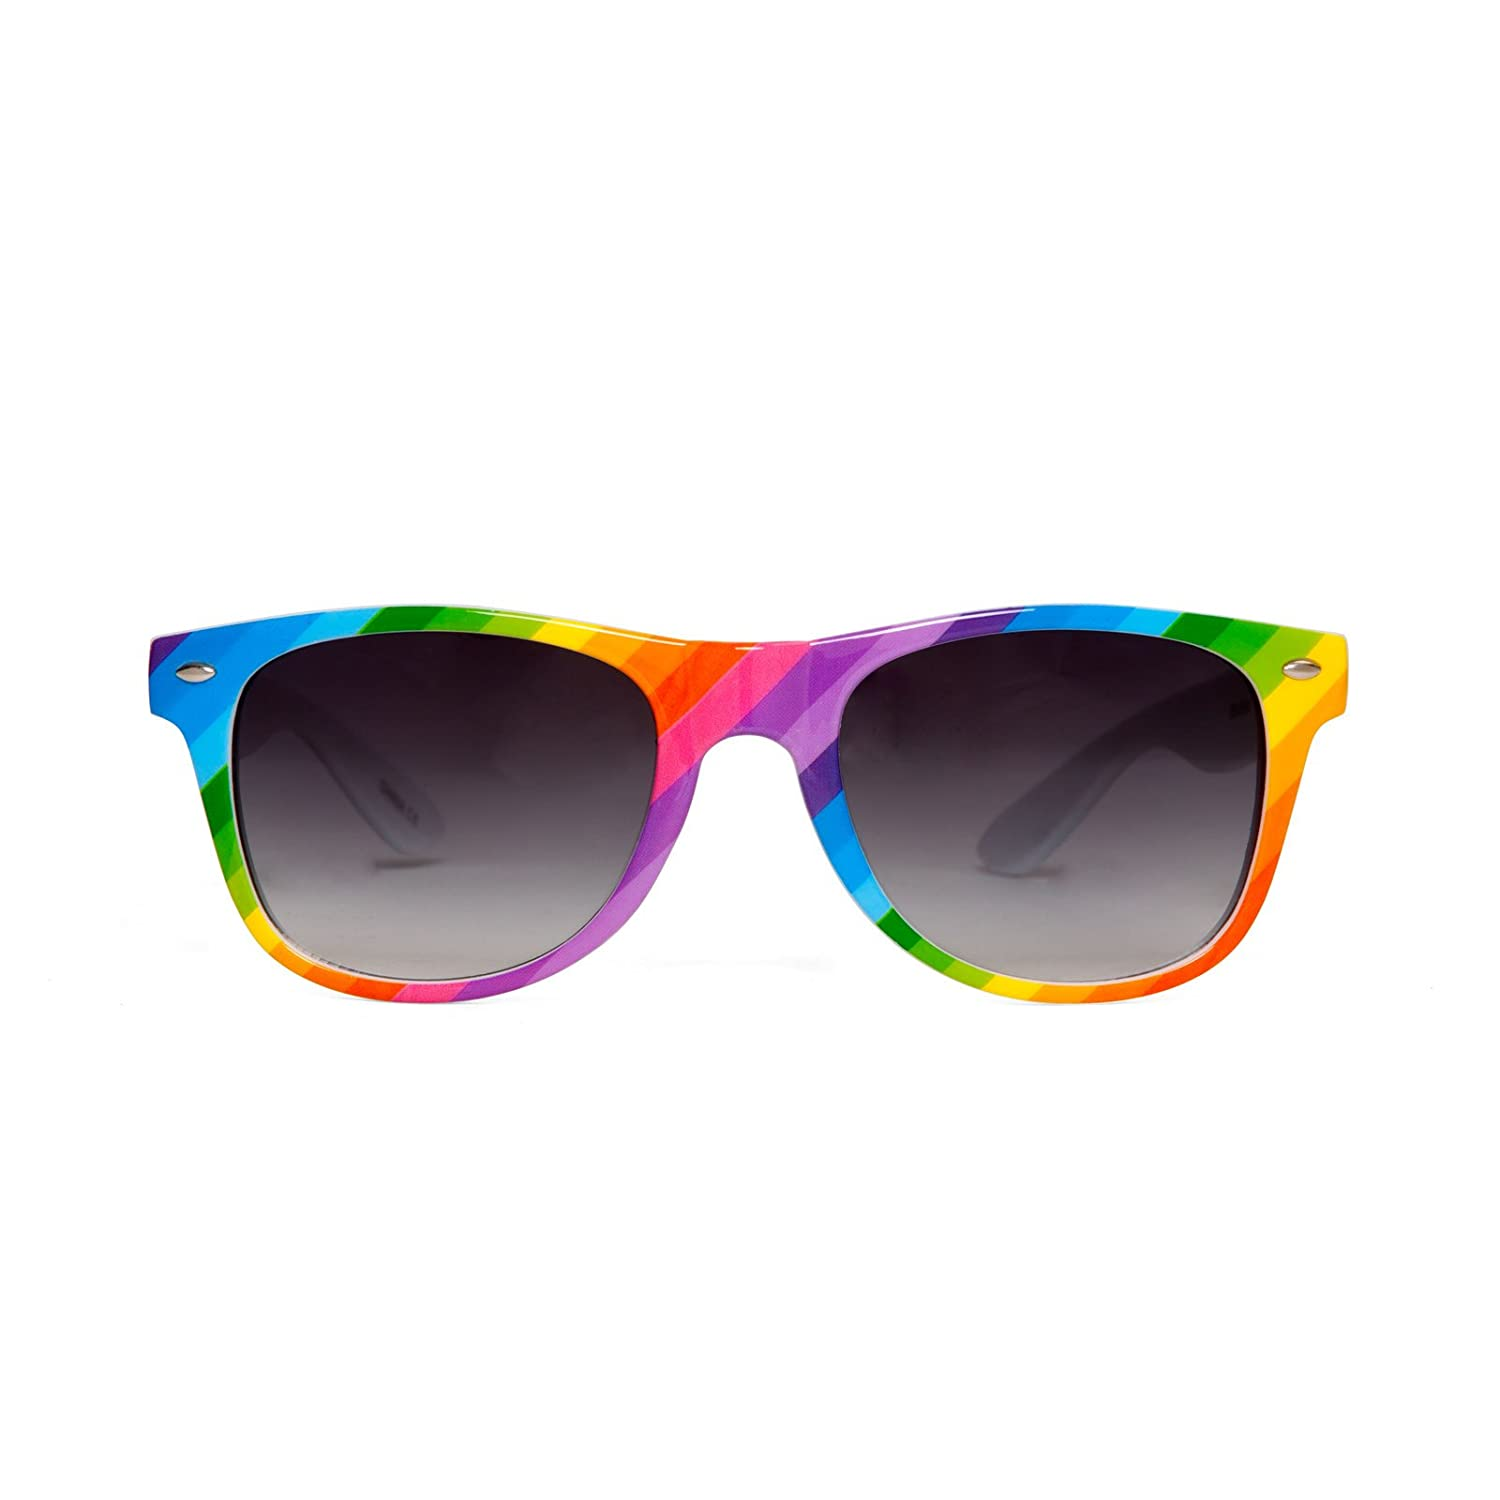 Amazon.com: Gravedad Shades arco iris Color horn-rim ...